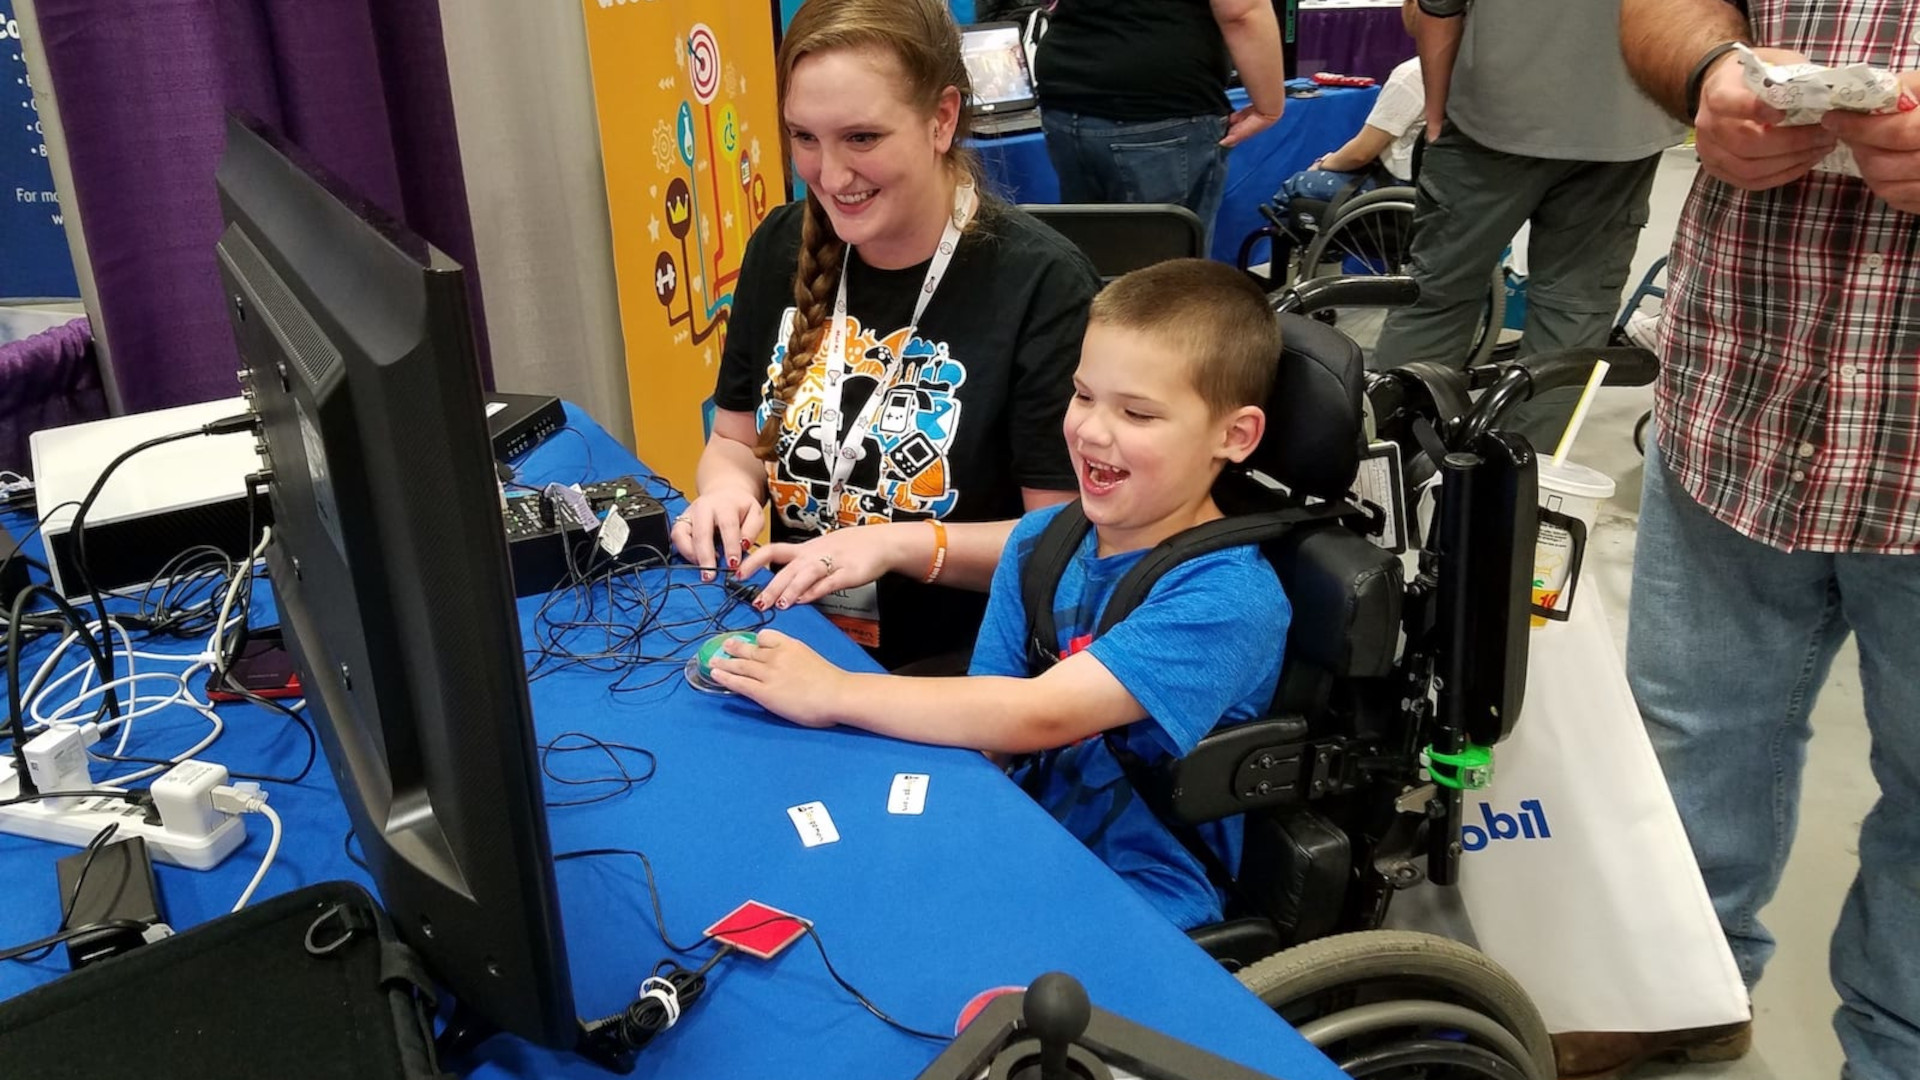 A young disabled boy playing video games with some adaptive controllers